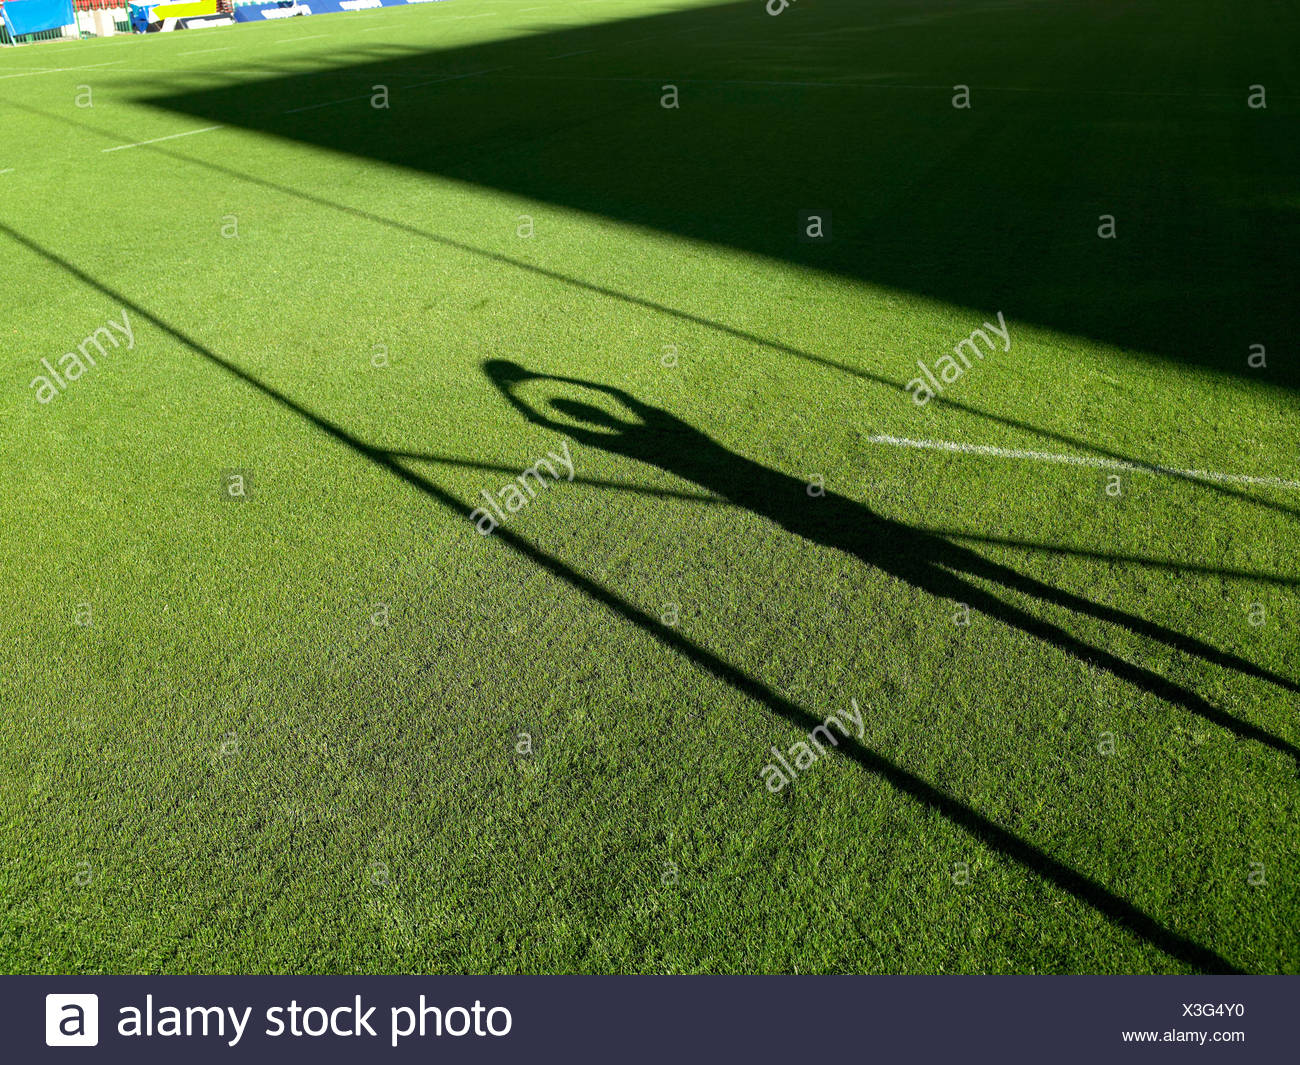 Shadow of rugby player and rugby post - Stock Image